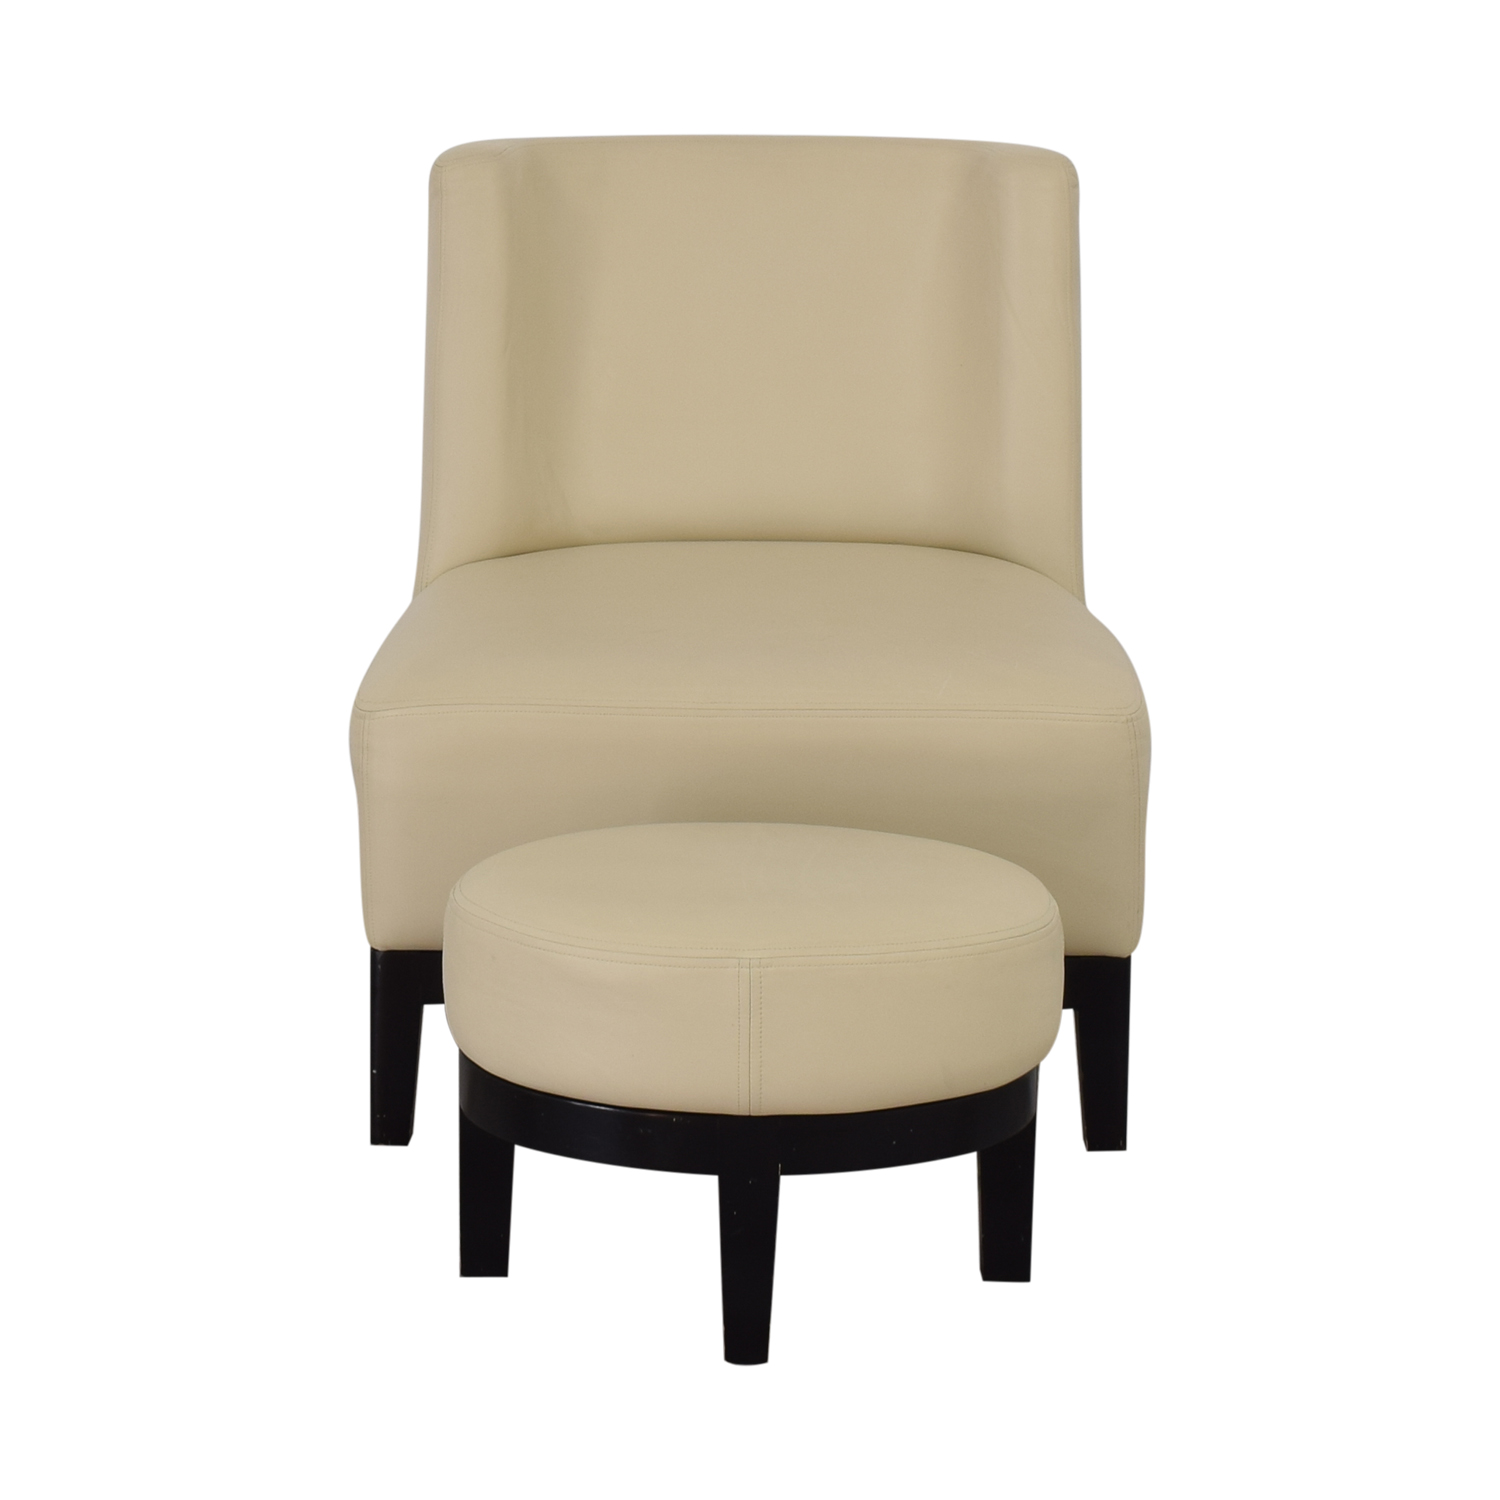 80 Off Armless Lounge Chair And Footstool Chairs